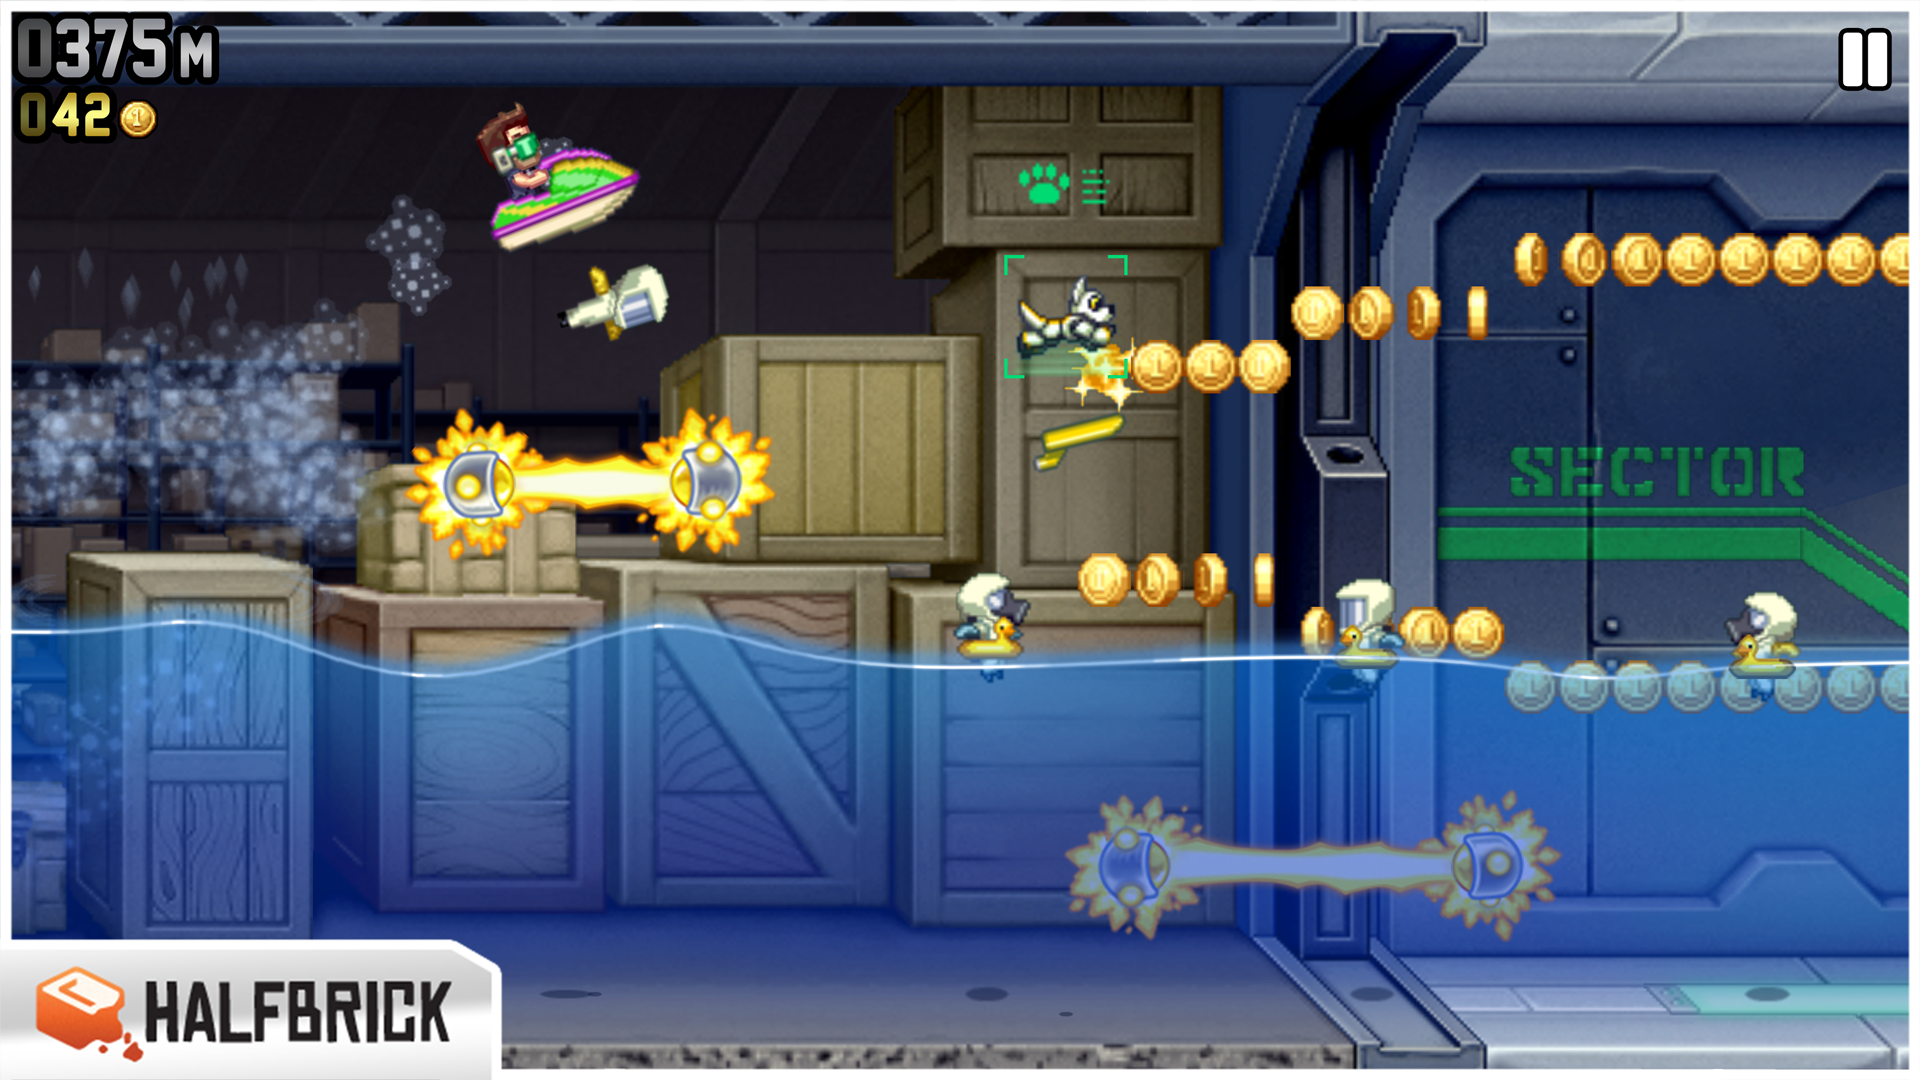 Jetpack Joyride screenshot 12